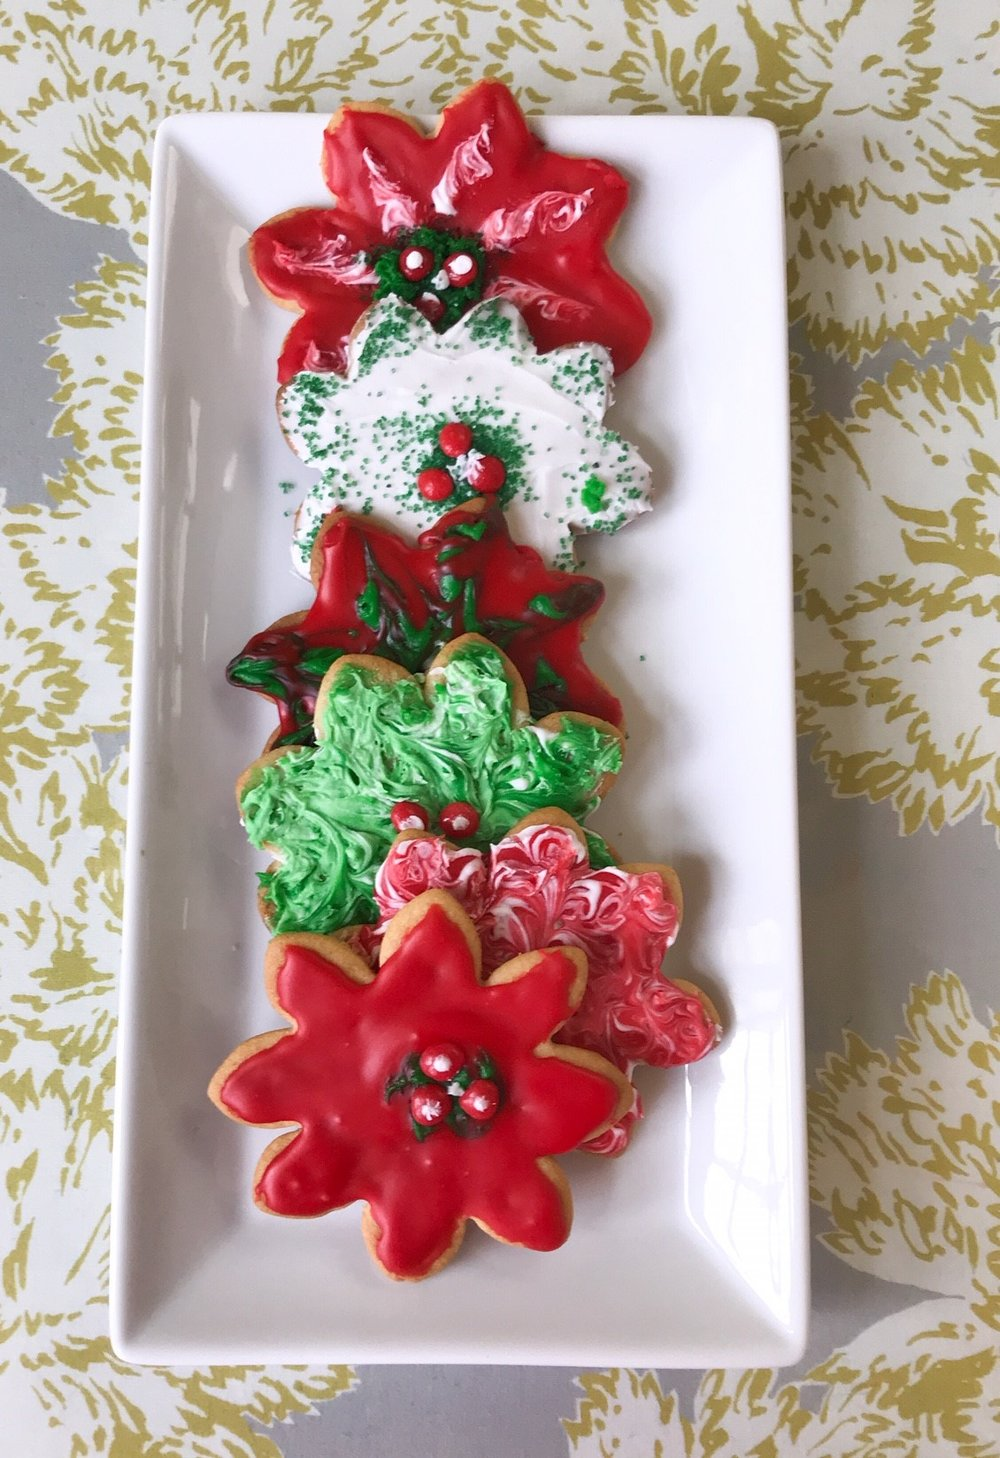 SCW Interiors Life Hacks Blog Post : Poinsettias. A Christmas tradition of mine is to make rolled sugar cookies with my poinsettia cookie cutters. See my favorite recipe from Joy of Cooking.